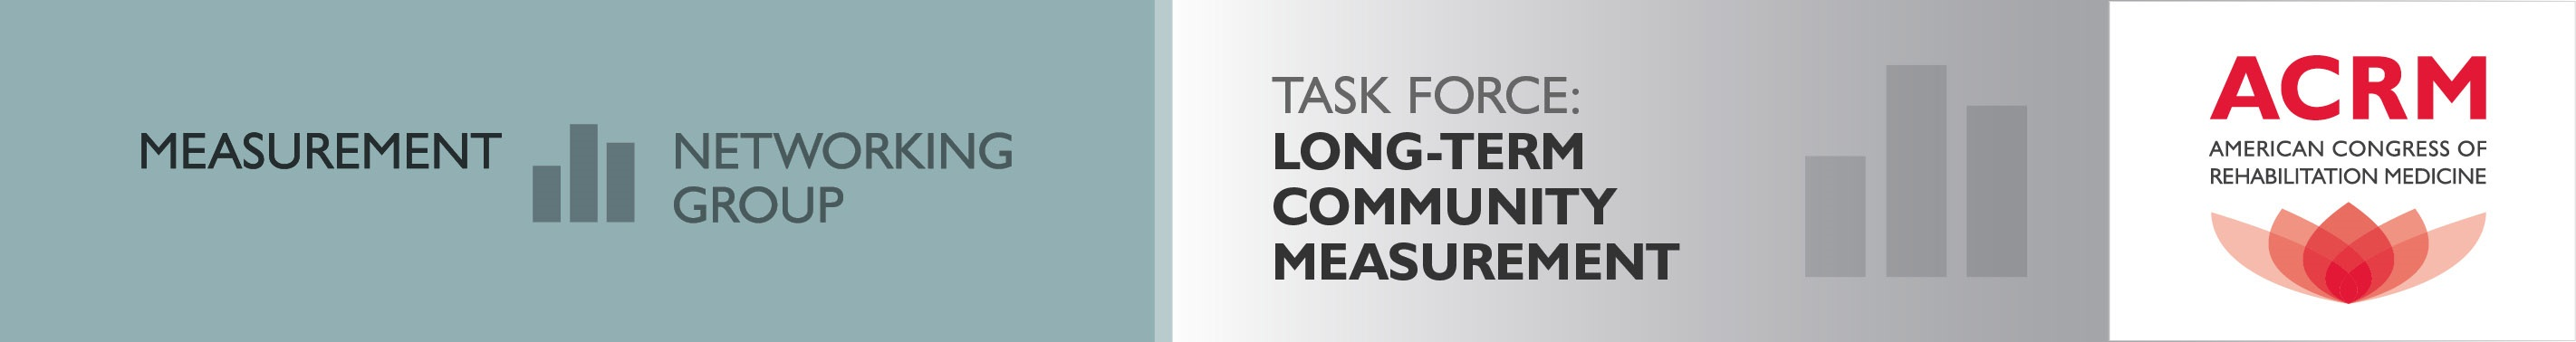 ACRM Measurement Networking Group Long-Term Community Task Force